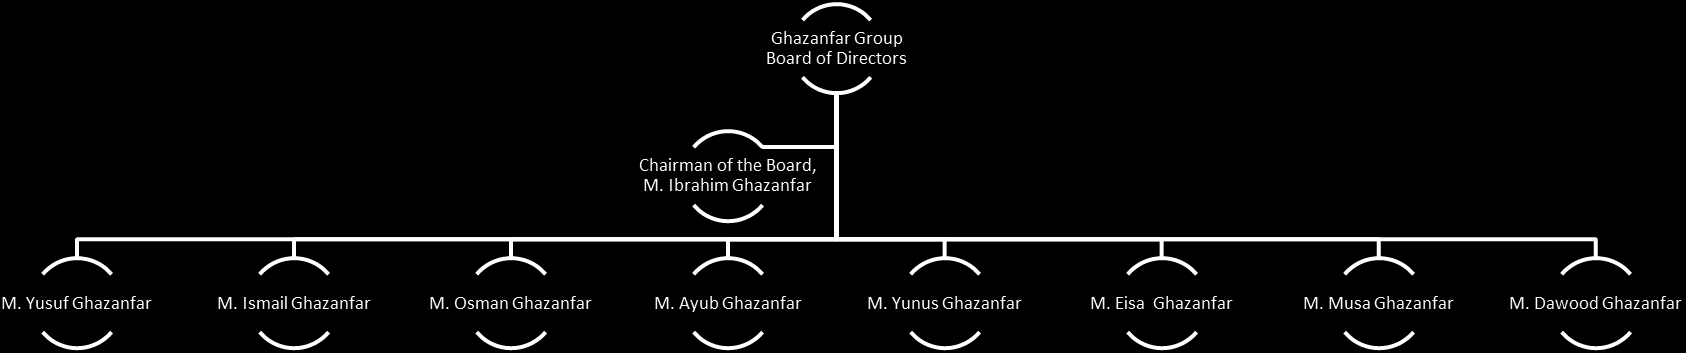 Leadership of the Ghazanfar Group The Ghazanfar Group of Companies is governed by its Board of Directors. The Chairman of the Board is Mr.